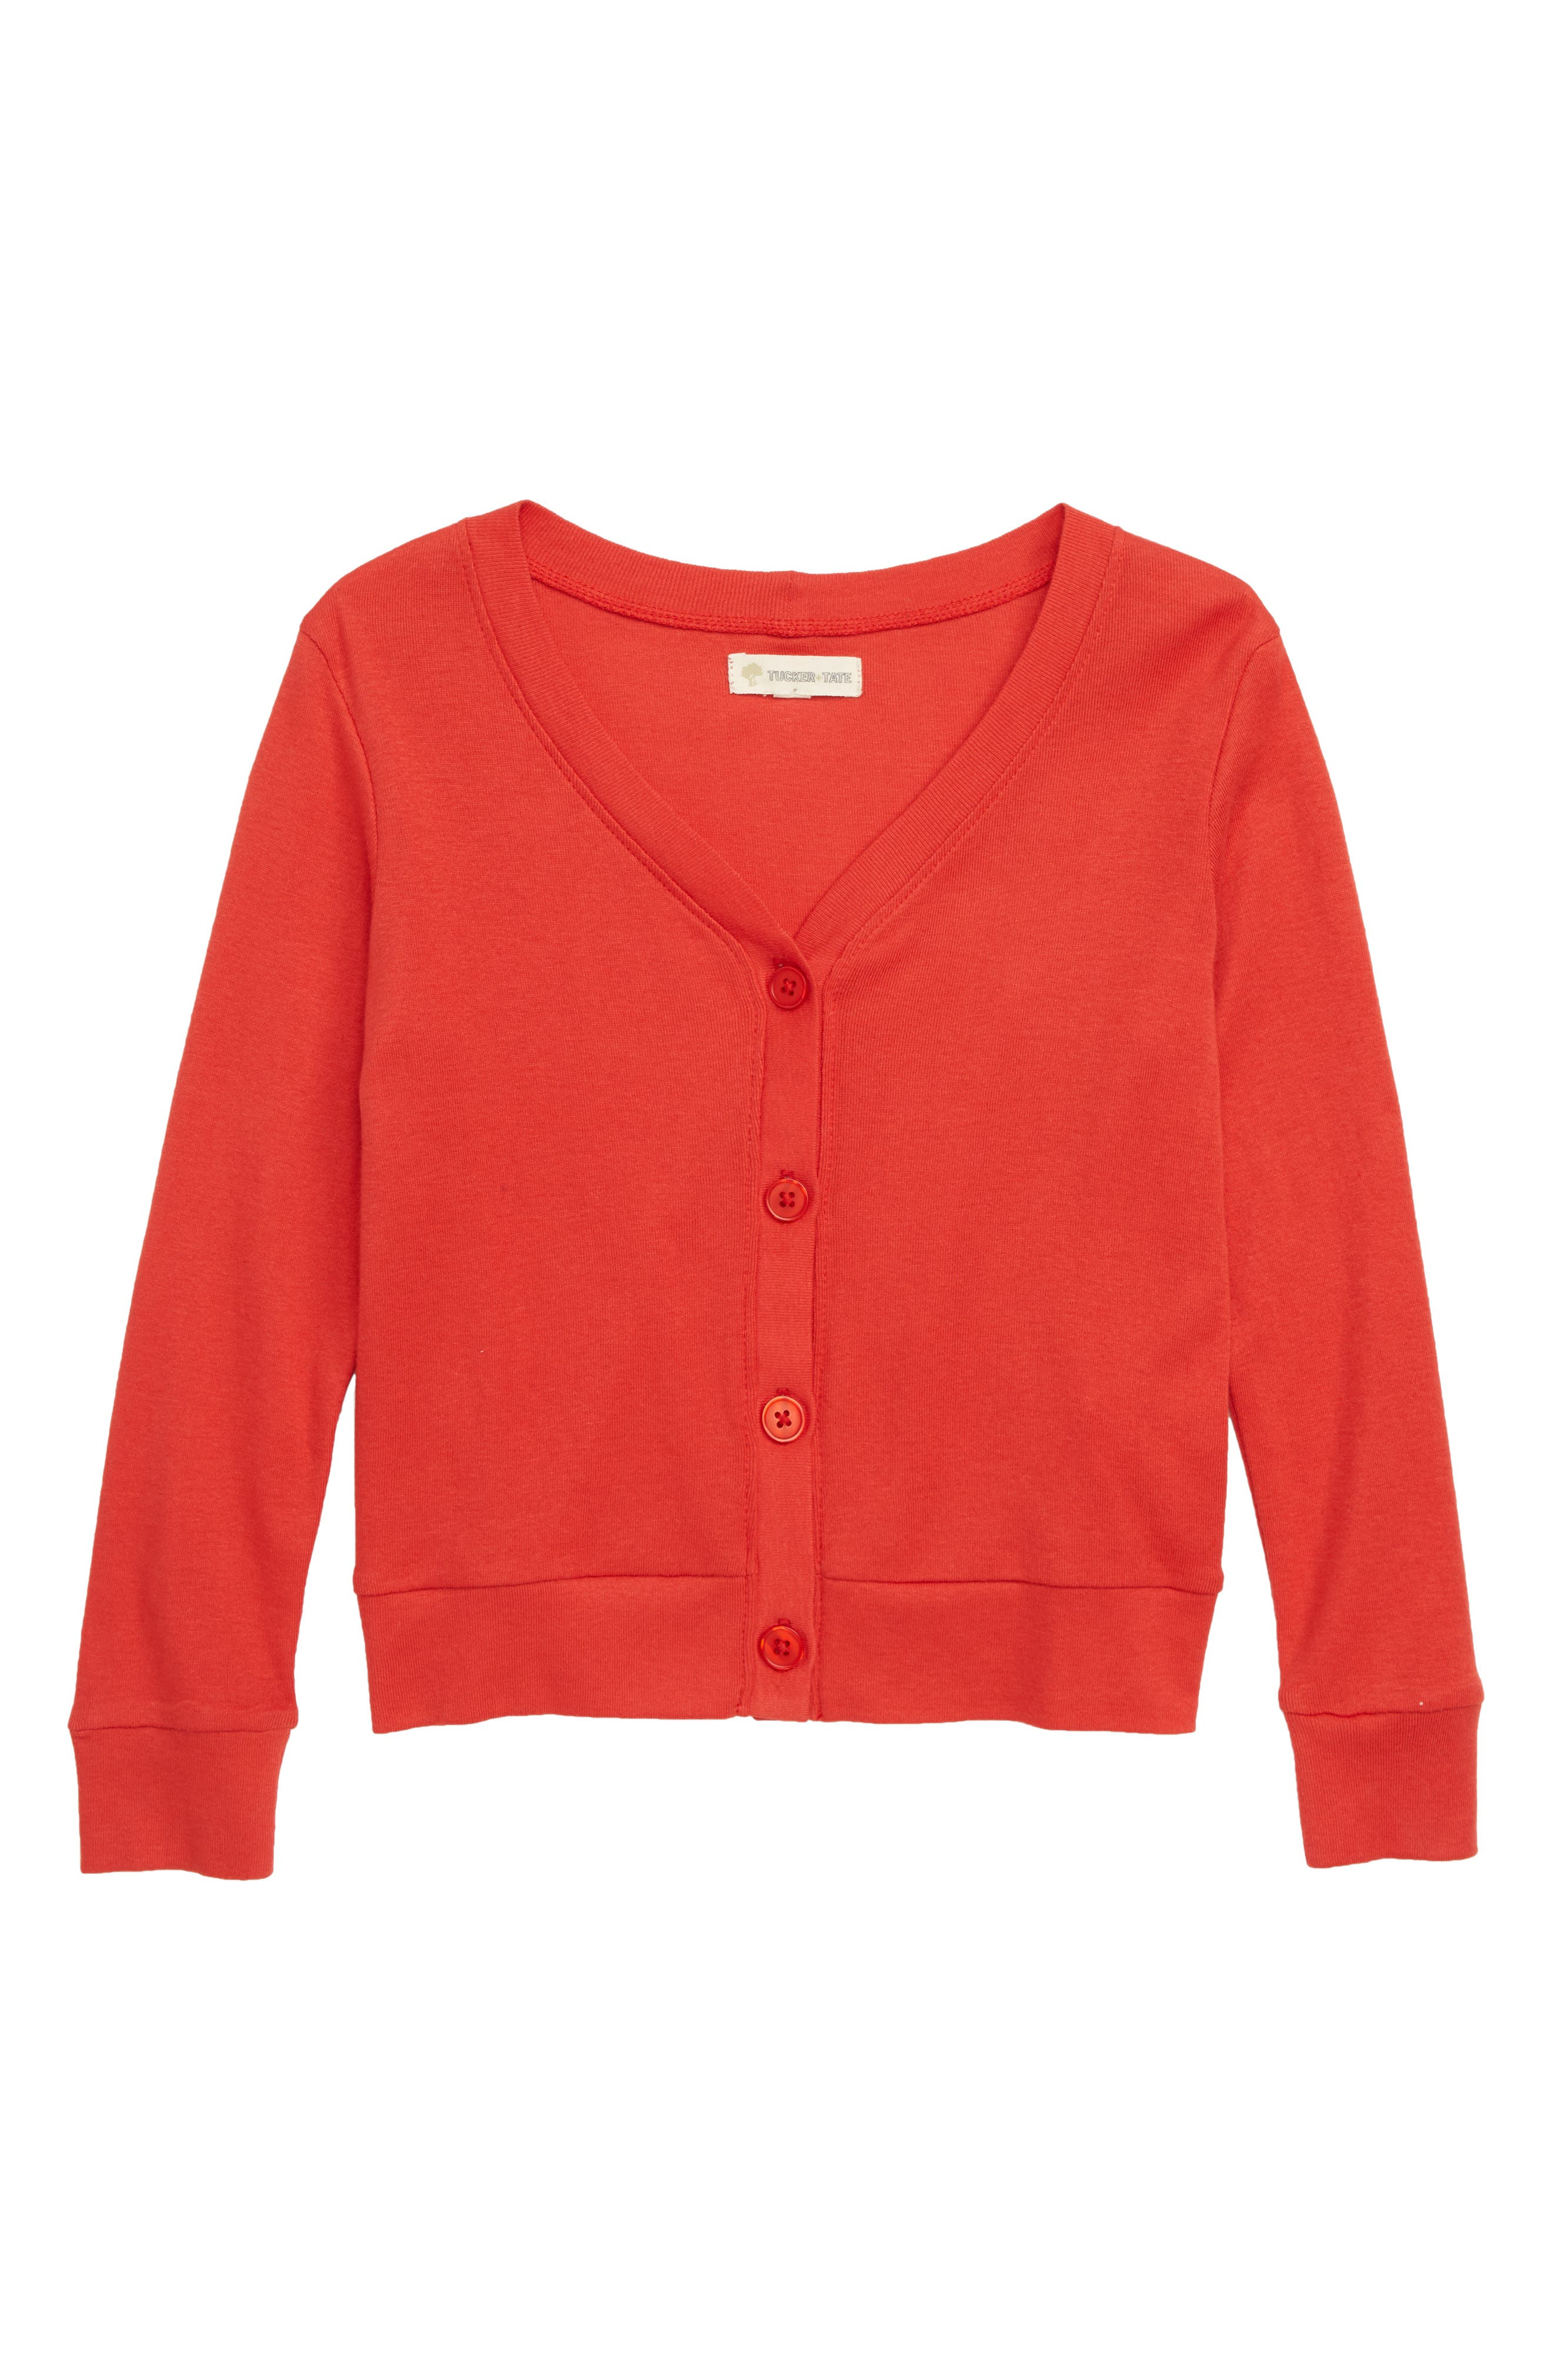 Everyday Ribbed Cardigan,                             Main thumbnail 1, color,                             RED SCARLET